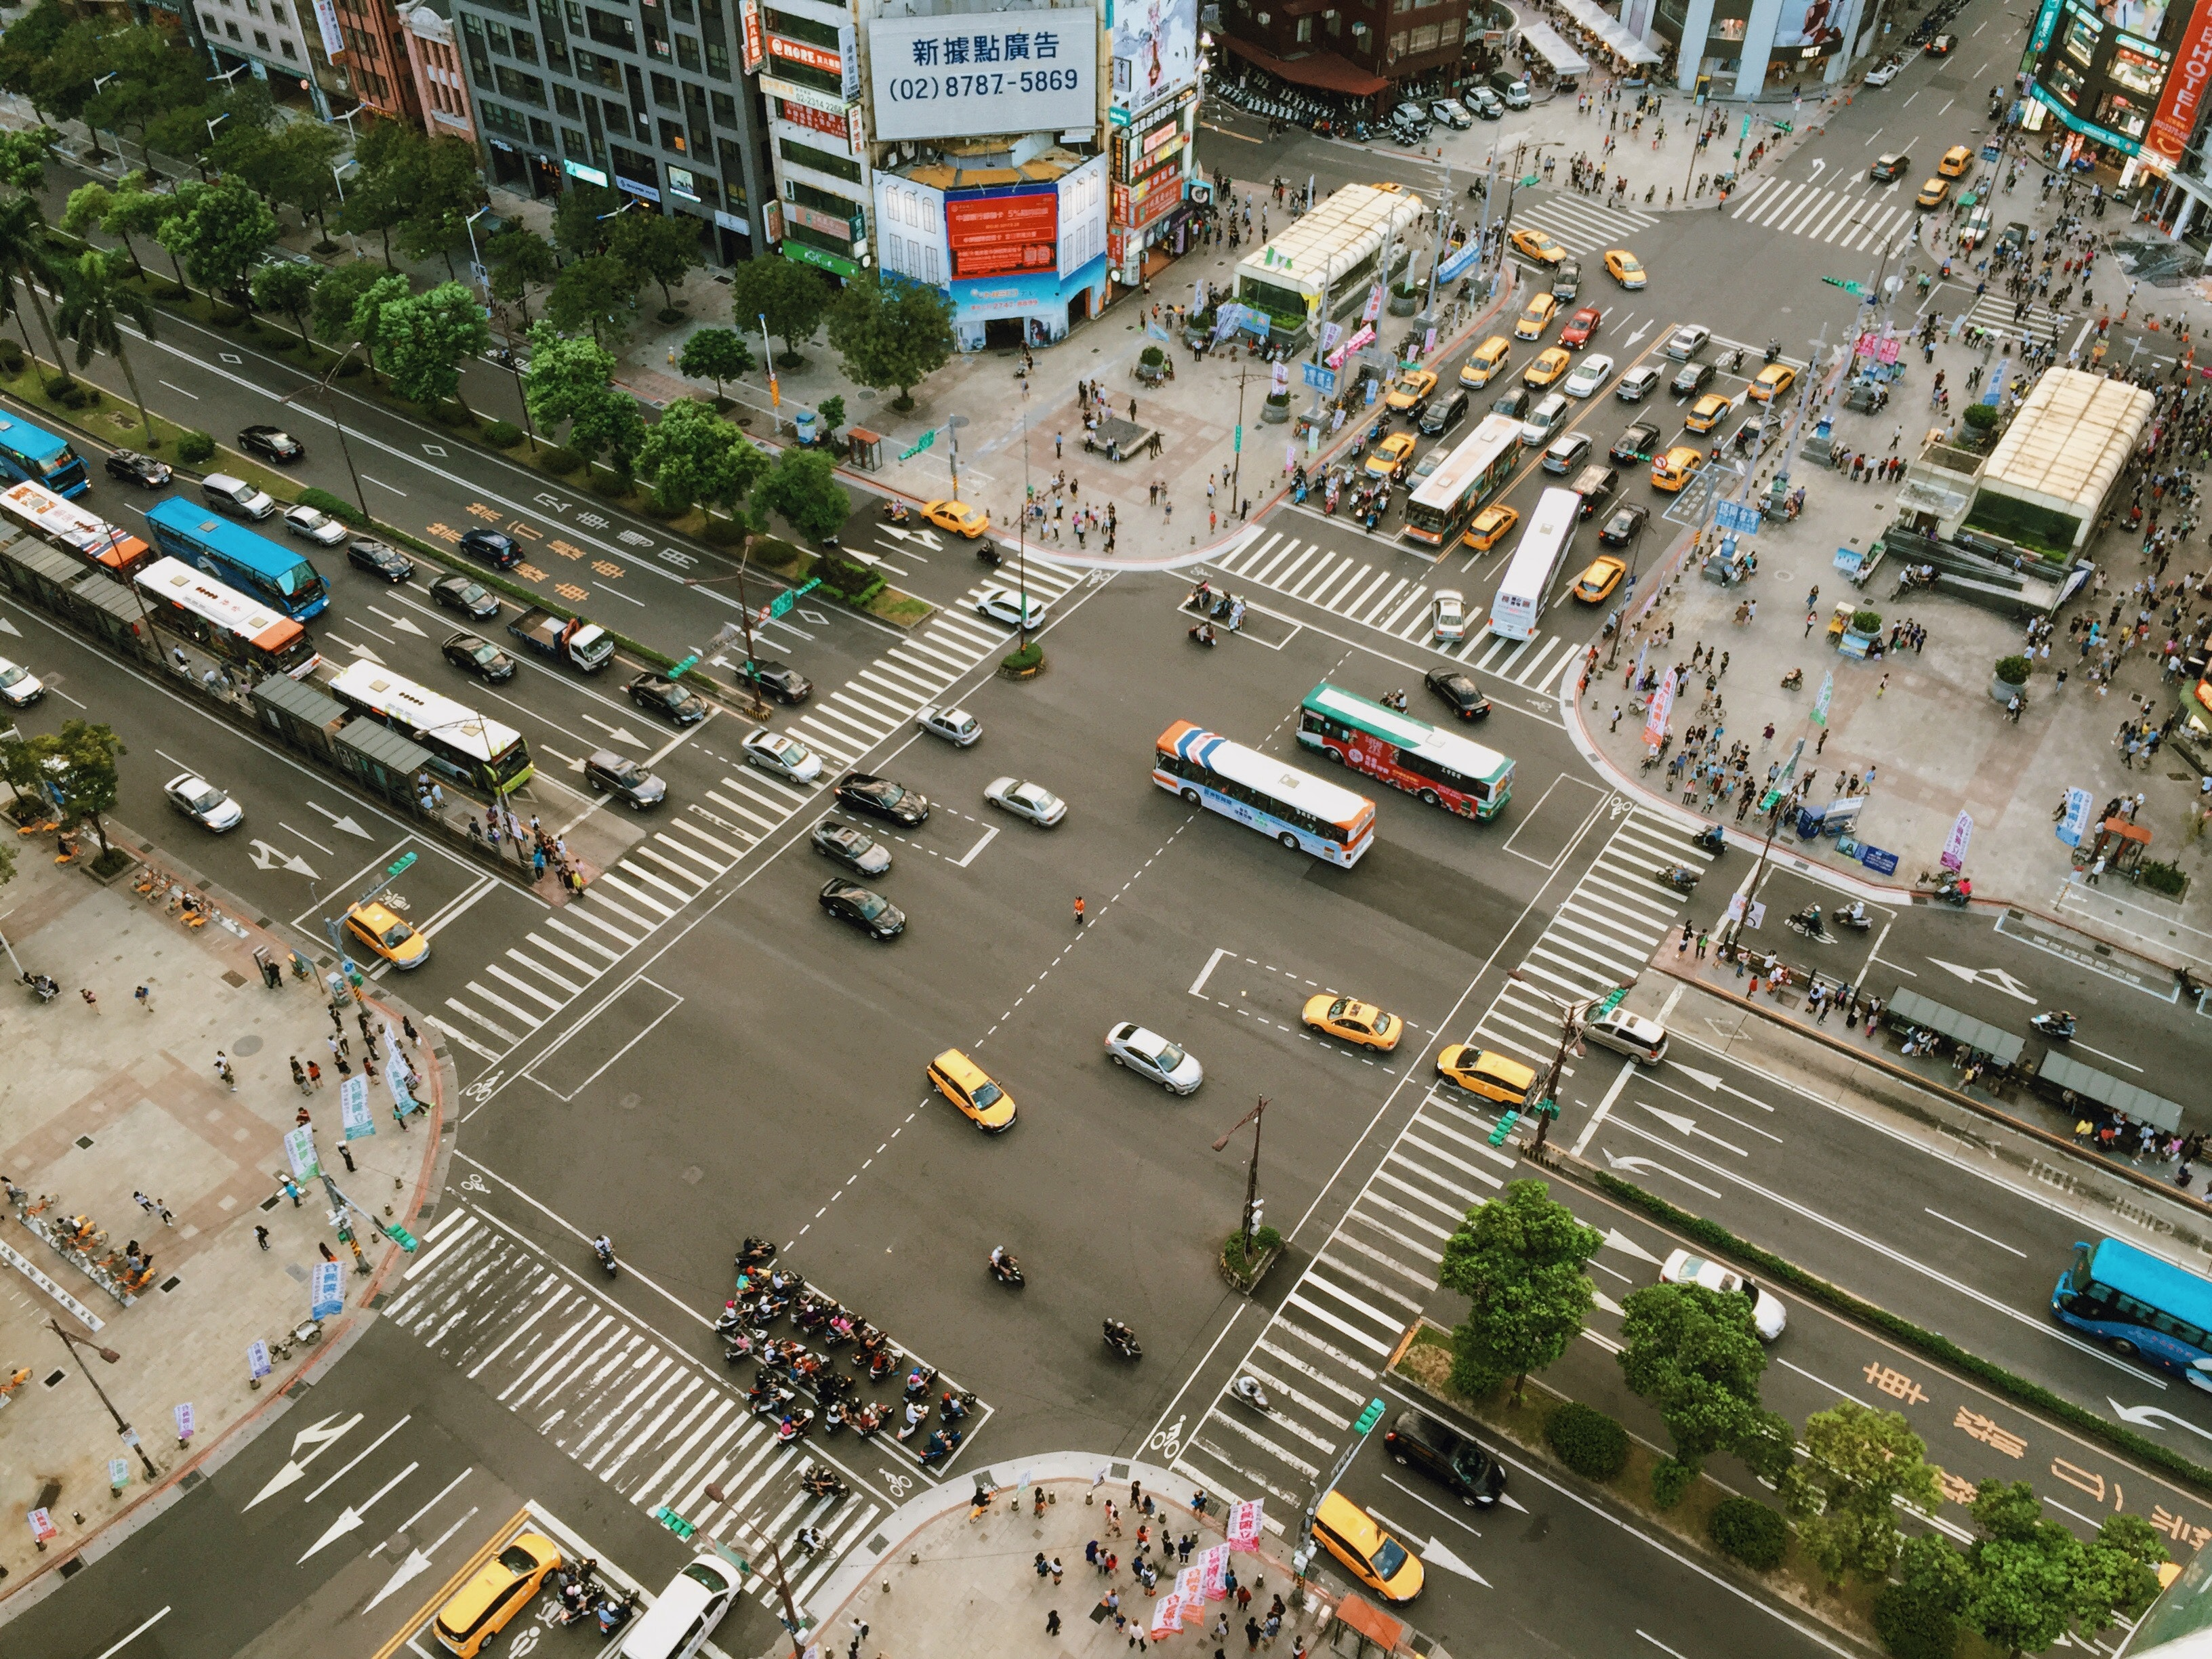 An Expert Interview: How Public Transit Fits Into the Future of Mobility